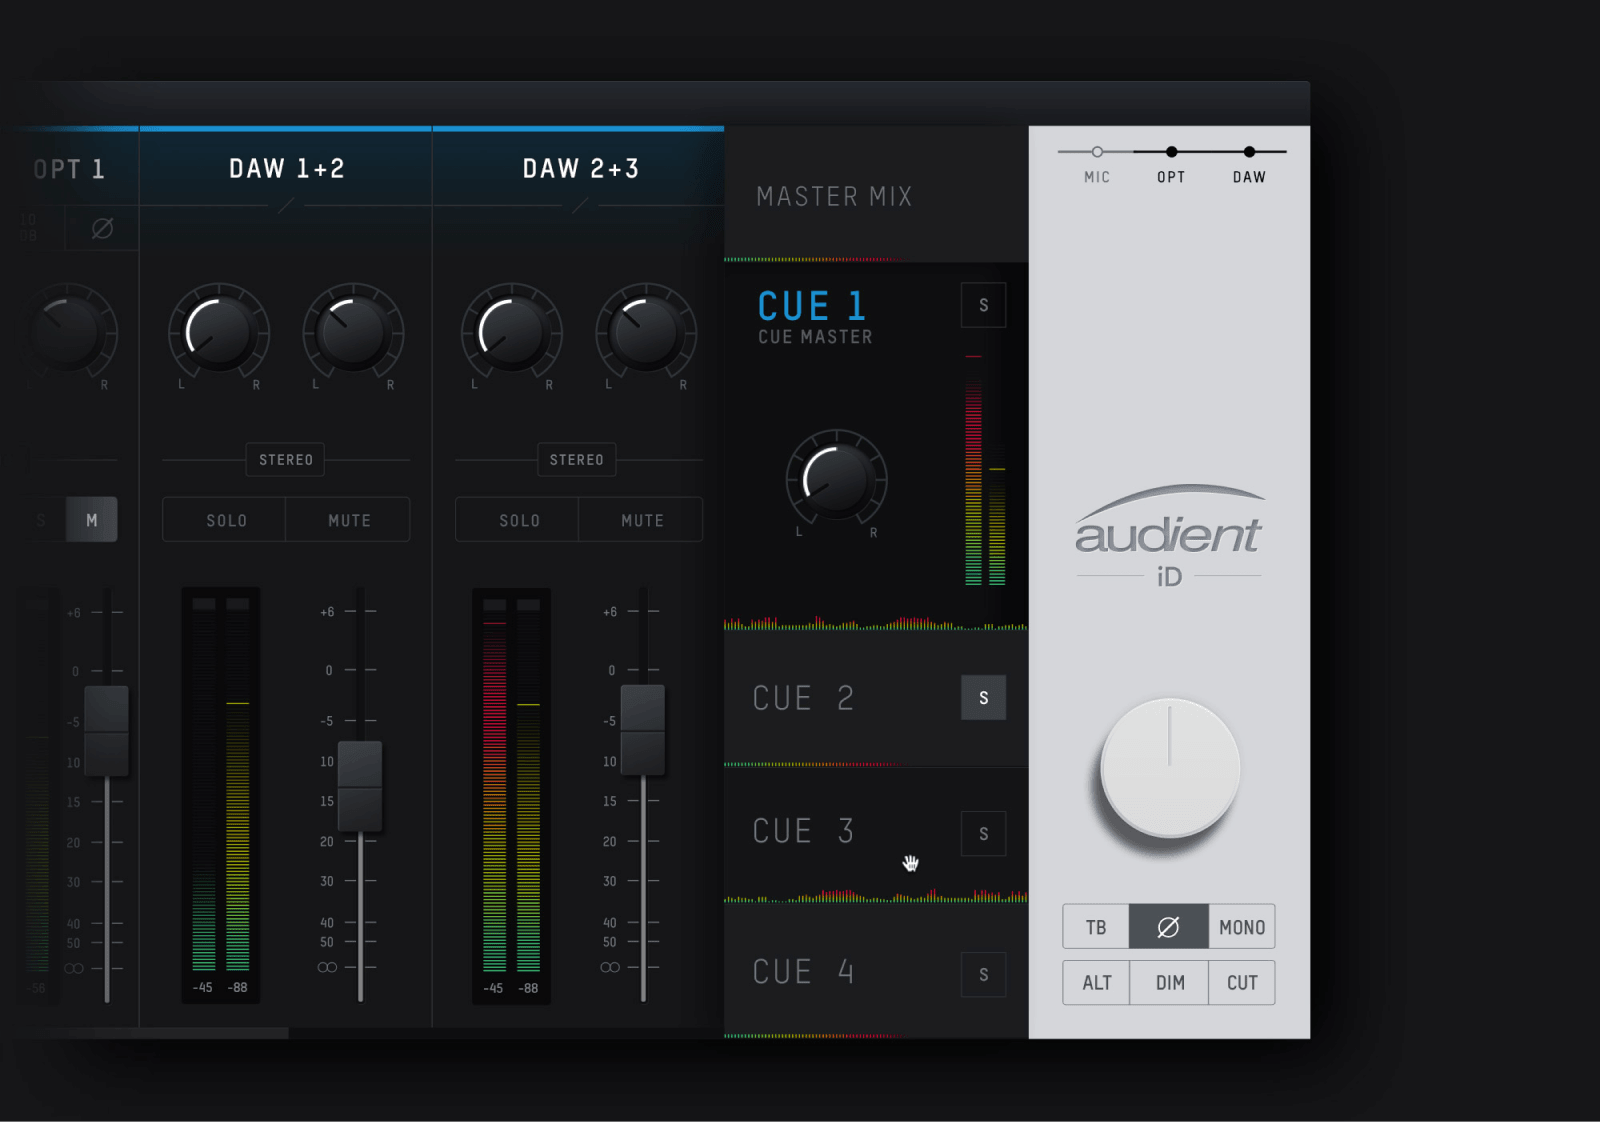 Audient —  Bringing mixer software into the 21st century with the first user-centered mixer interface.